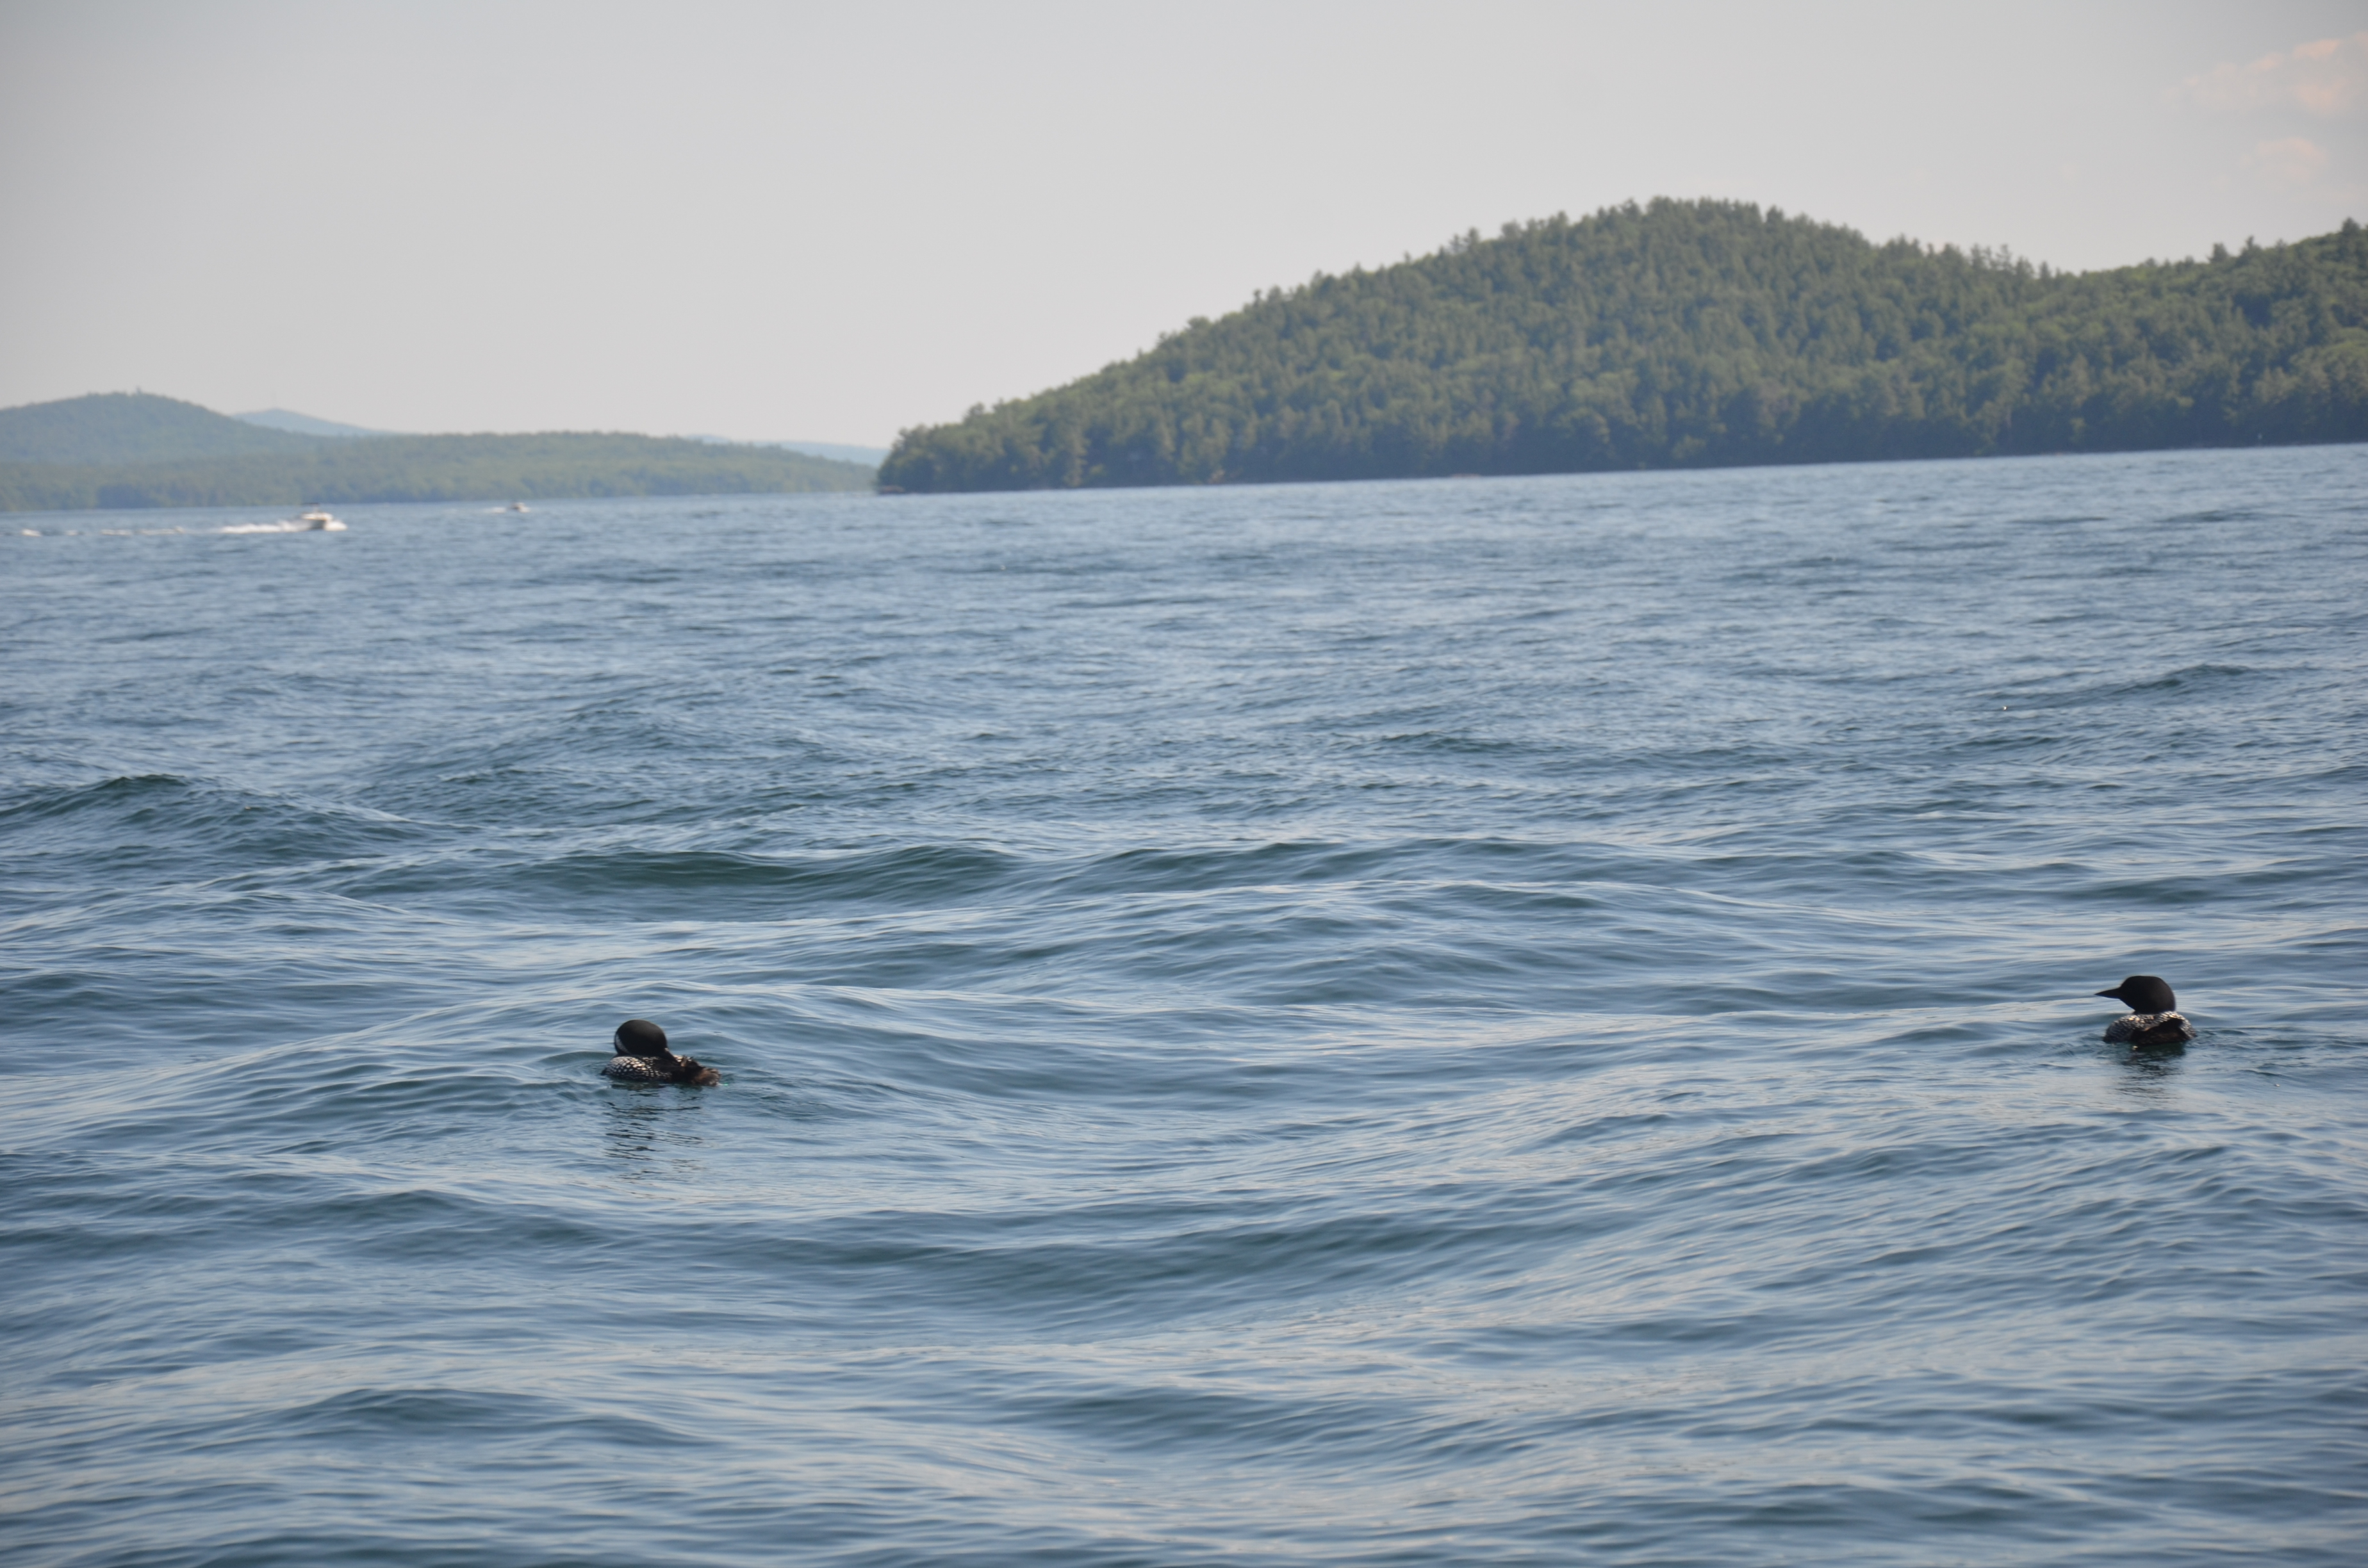 2 loons ride the large weekend waves on Winnipesaukee.